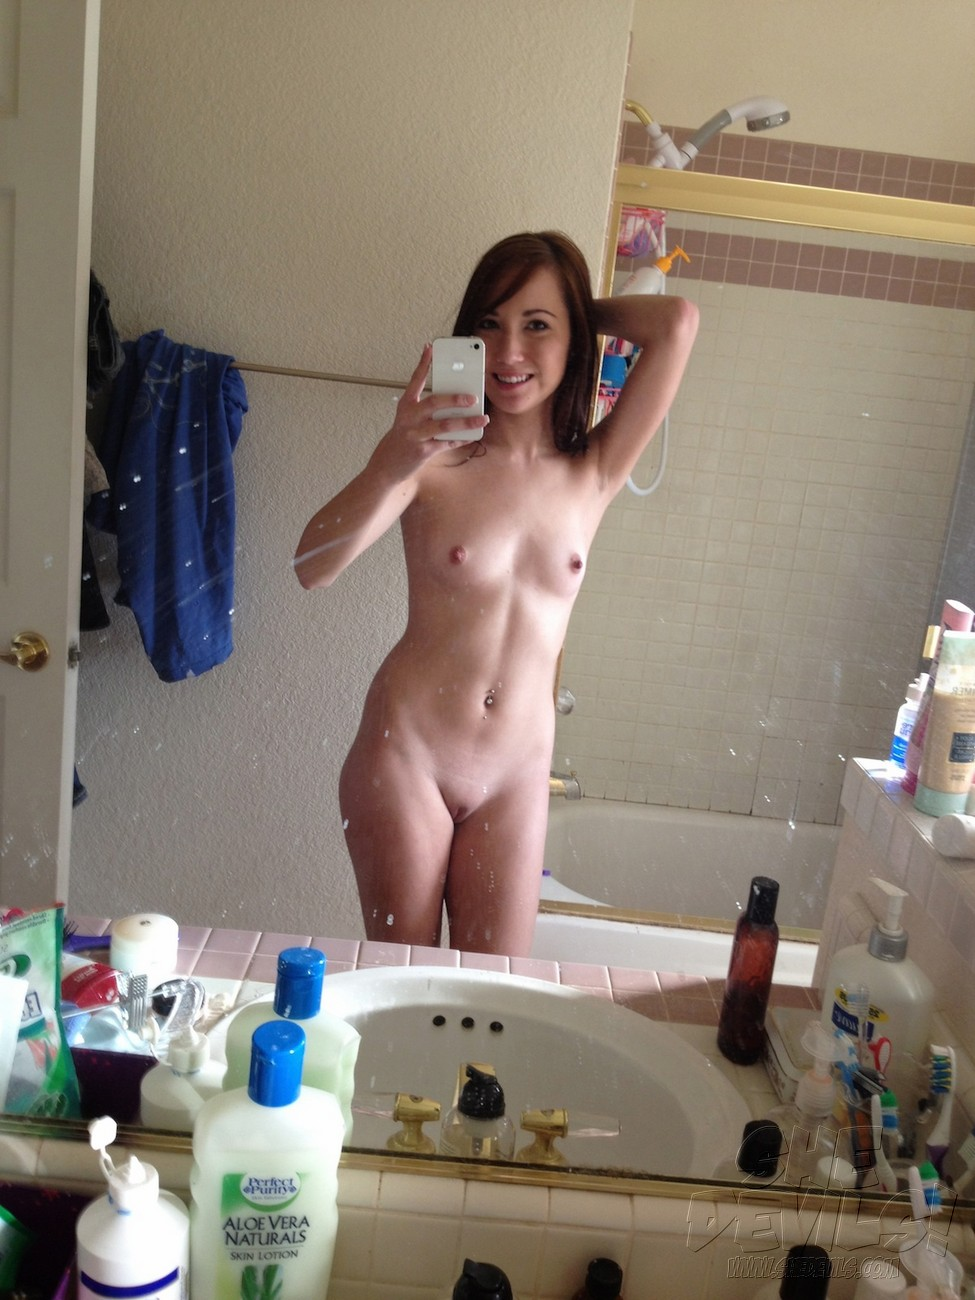 Young female taking selfphotos naked